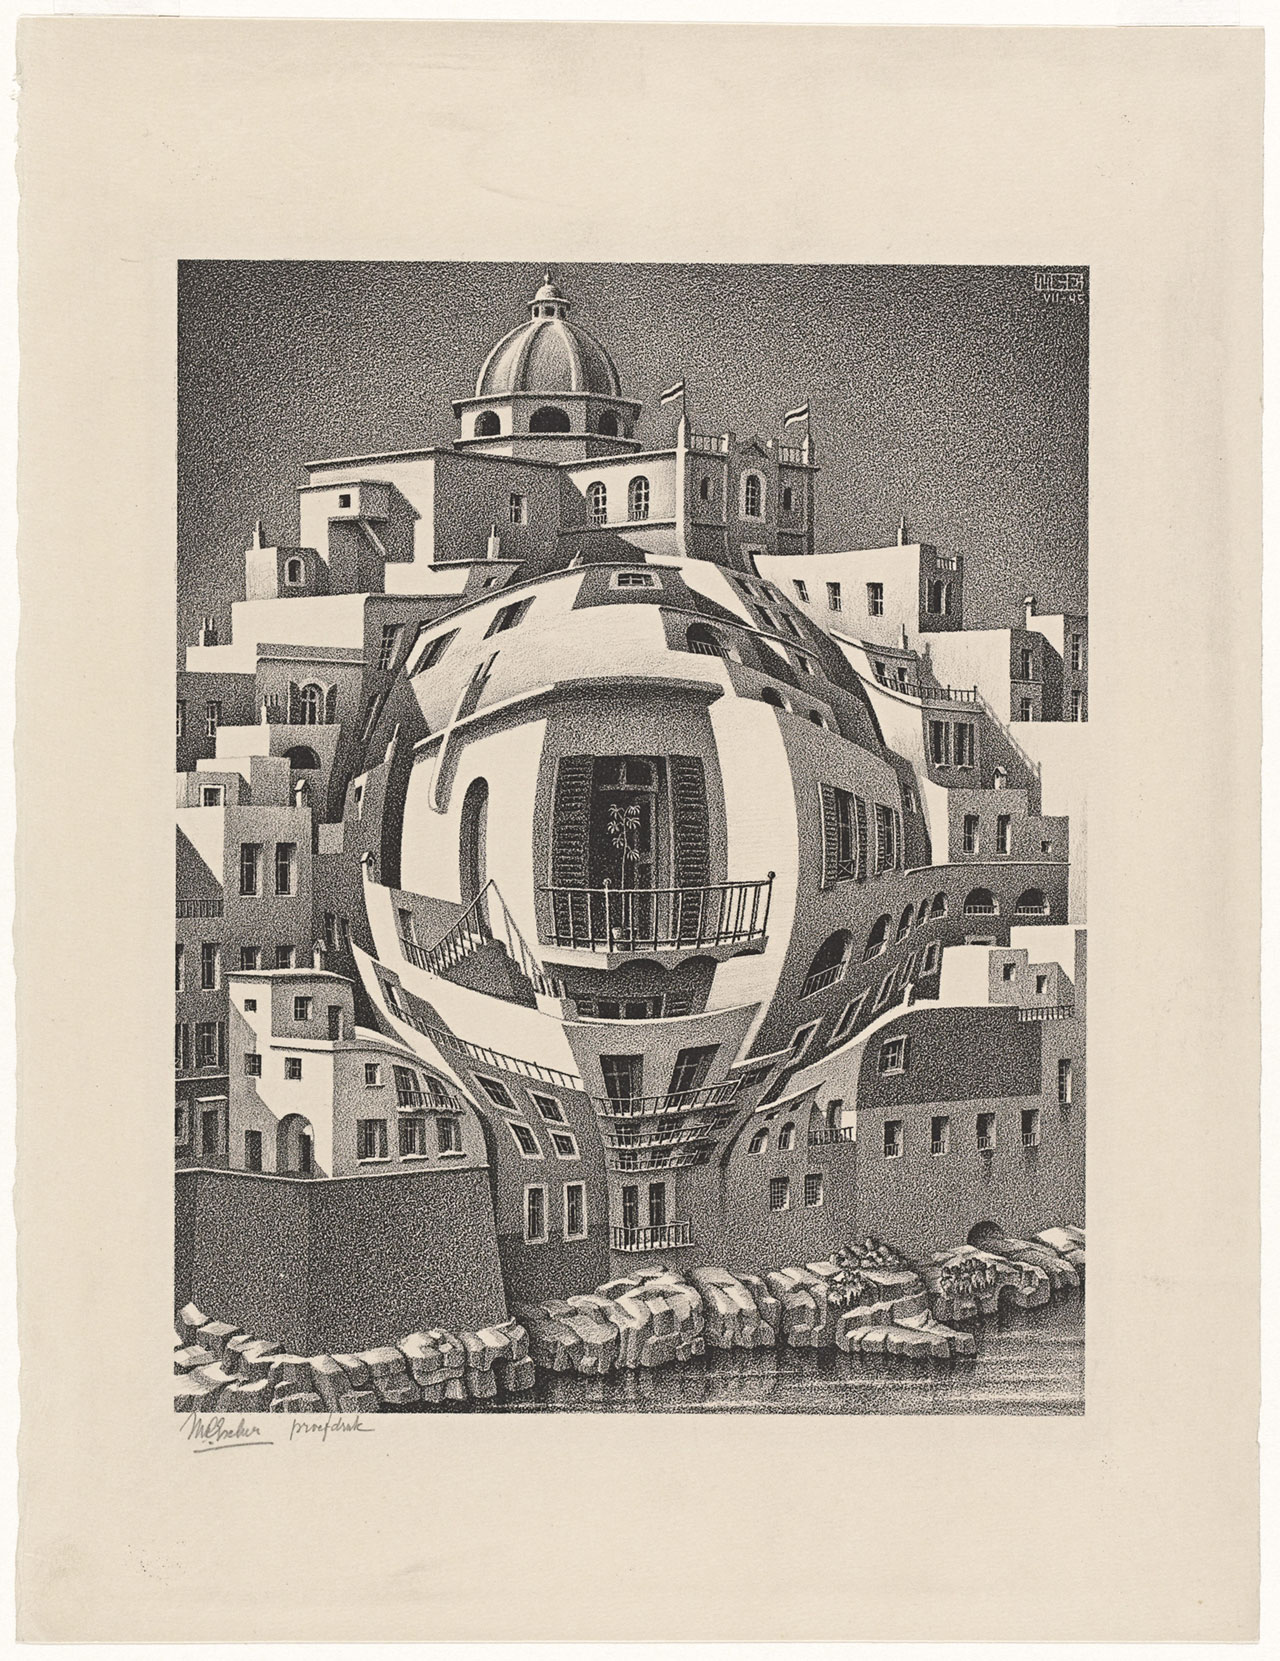 M. C. Escher, Balcony, July 1945, lithograph. Escher Collection, Gemeentemuseum Den Haag, The Hague, the Netherlands © The M. C. Escher Company, the Netherlands. All rights reserved.